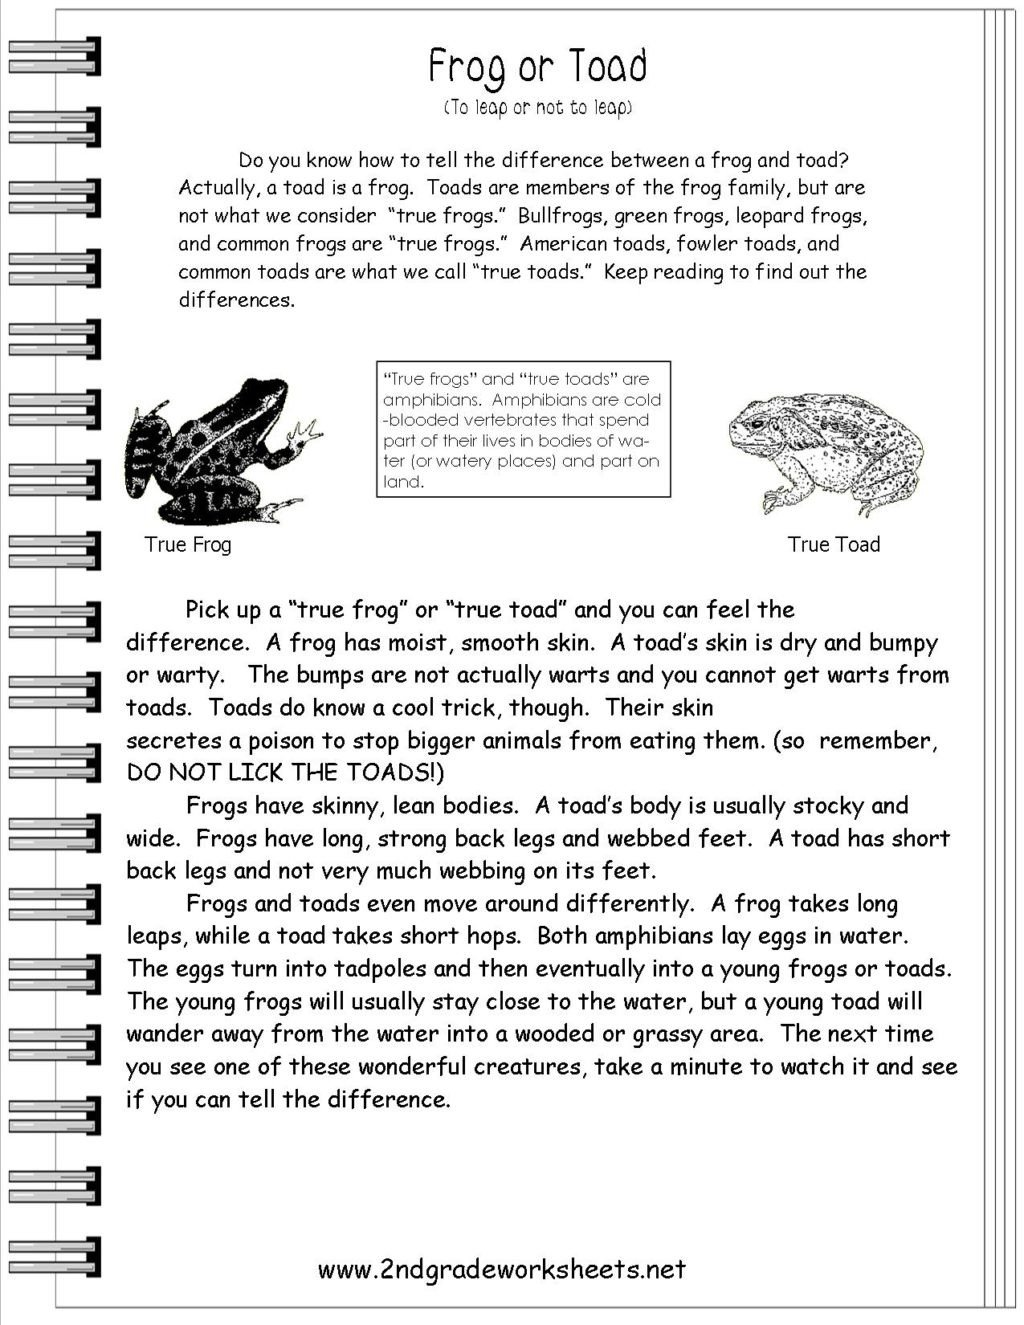 Finding the Main Idea Worksheet Worksheet Fabulous 2nd Grade Line Games Image Ideas Main